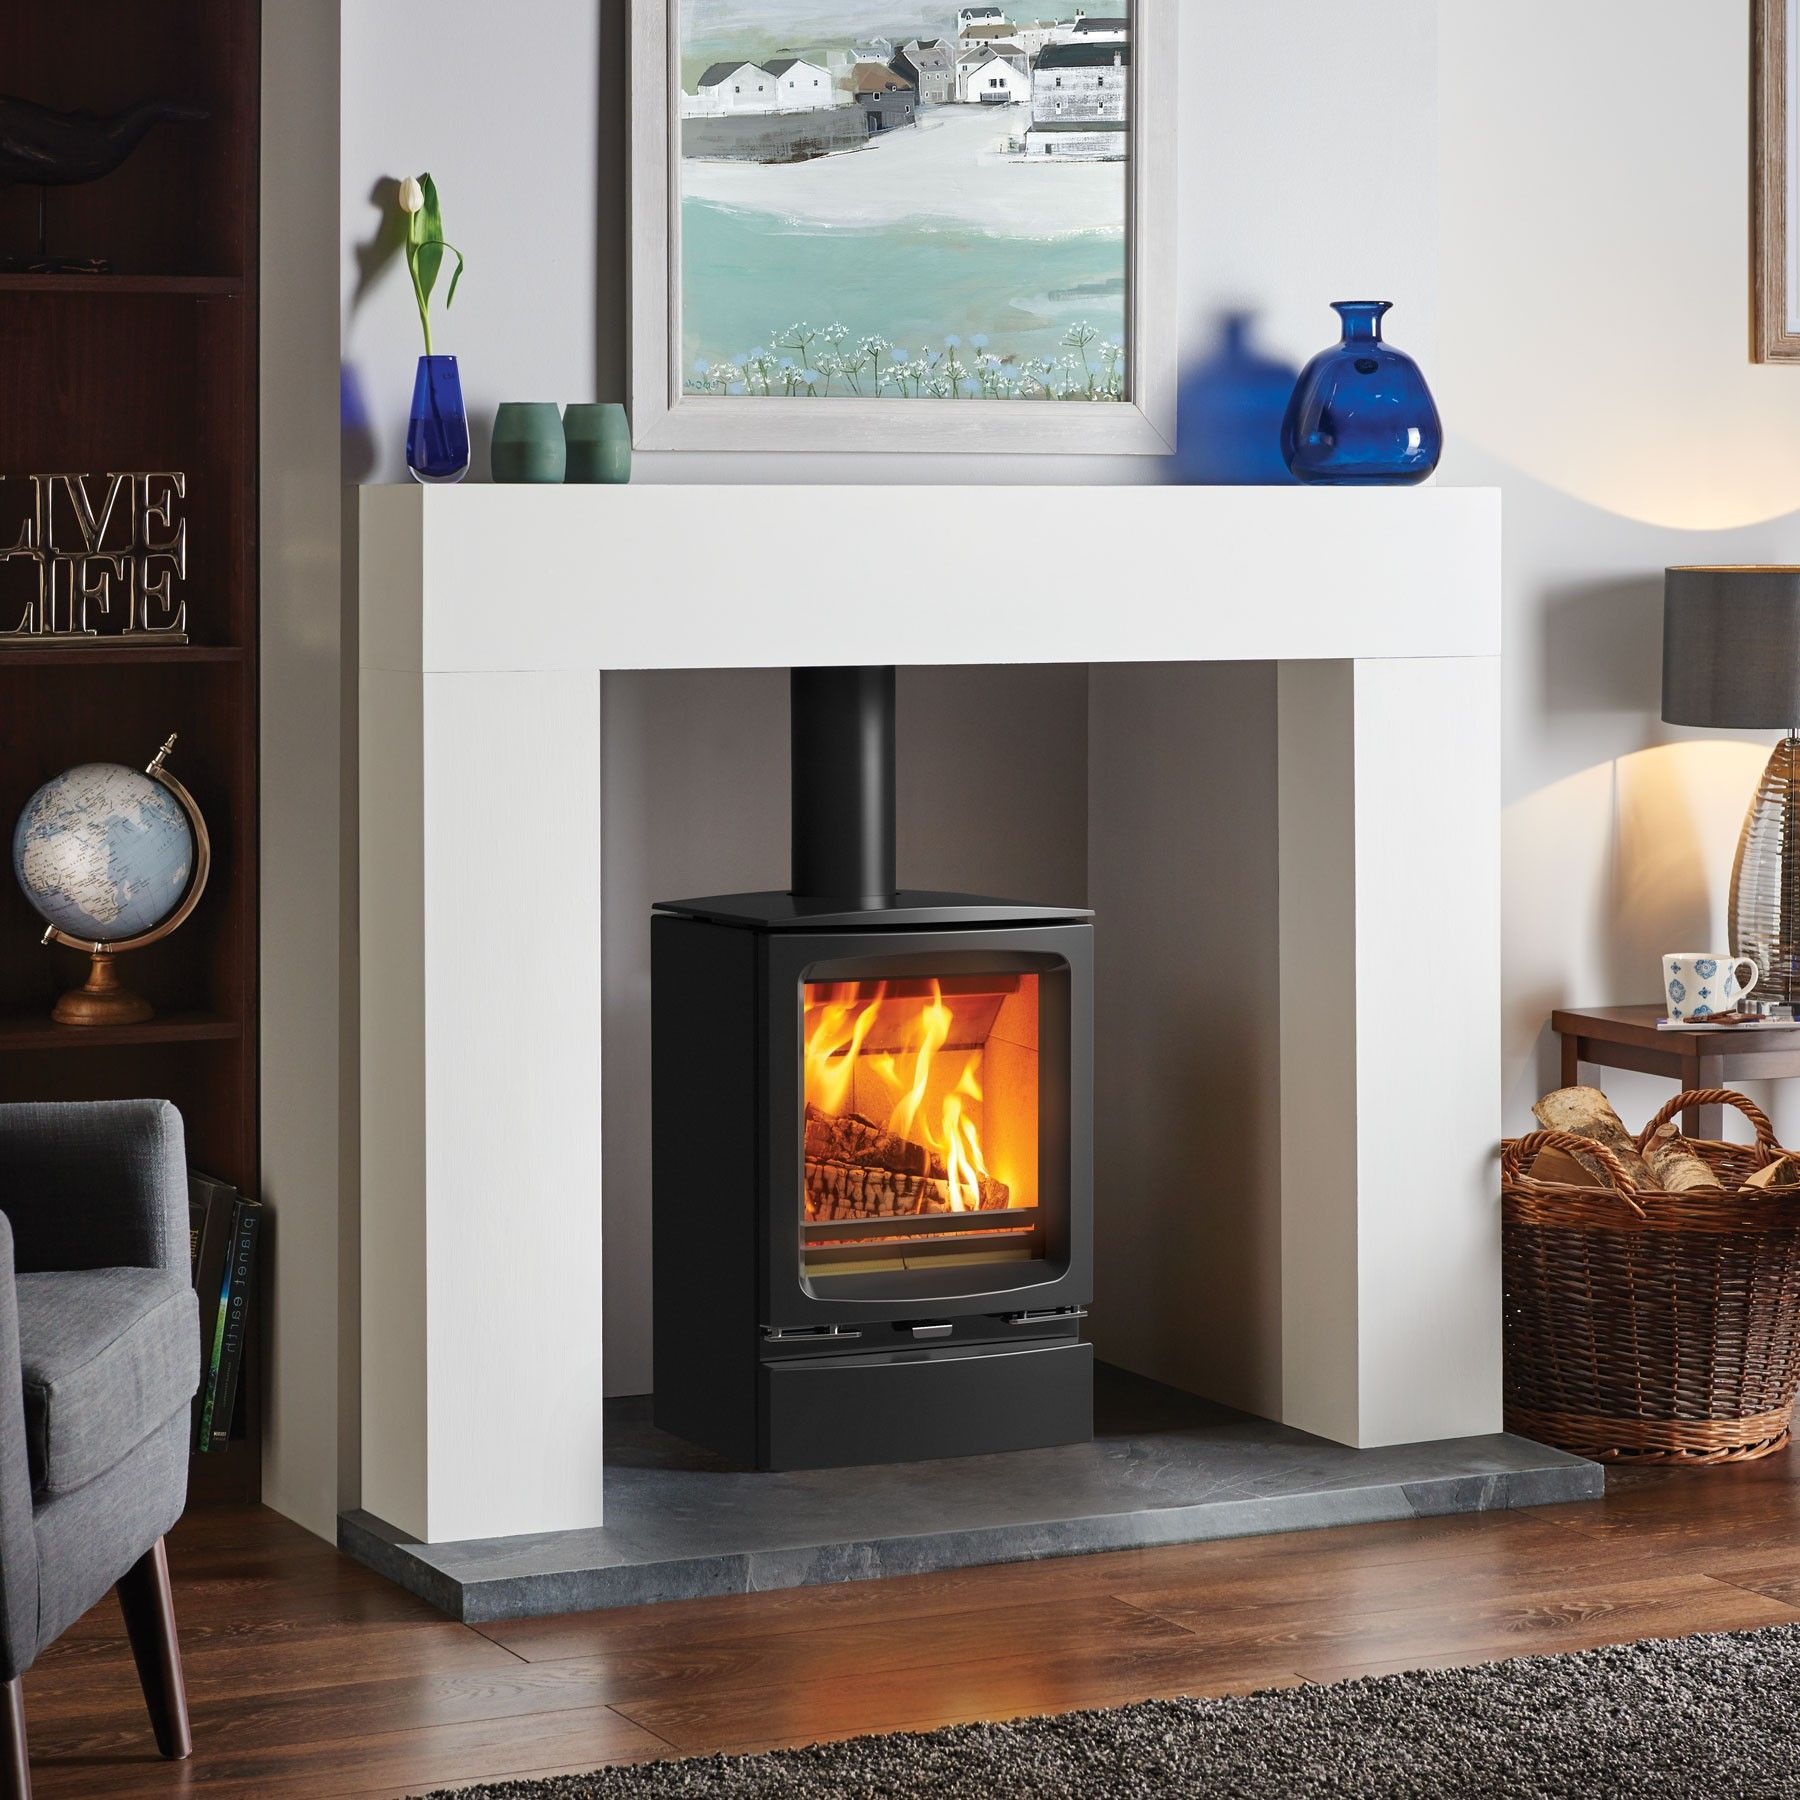 Wood Burner Fireplace Ideas Lovely Pin by Home&garden On Kitchens